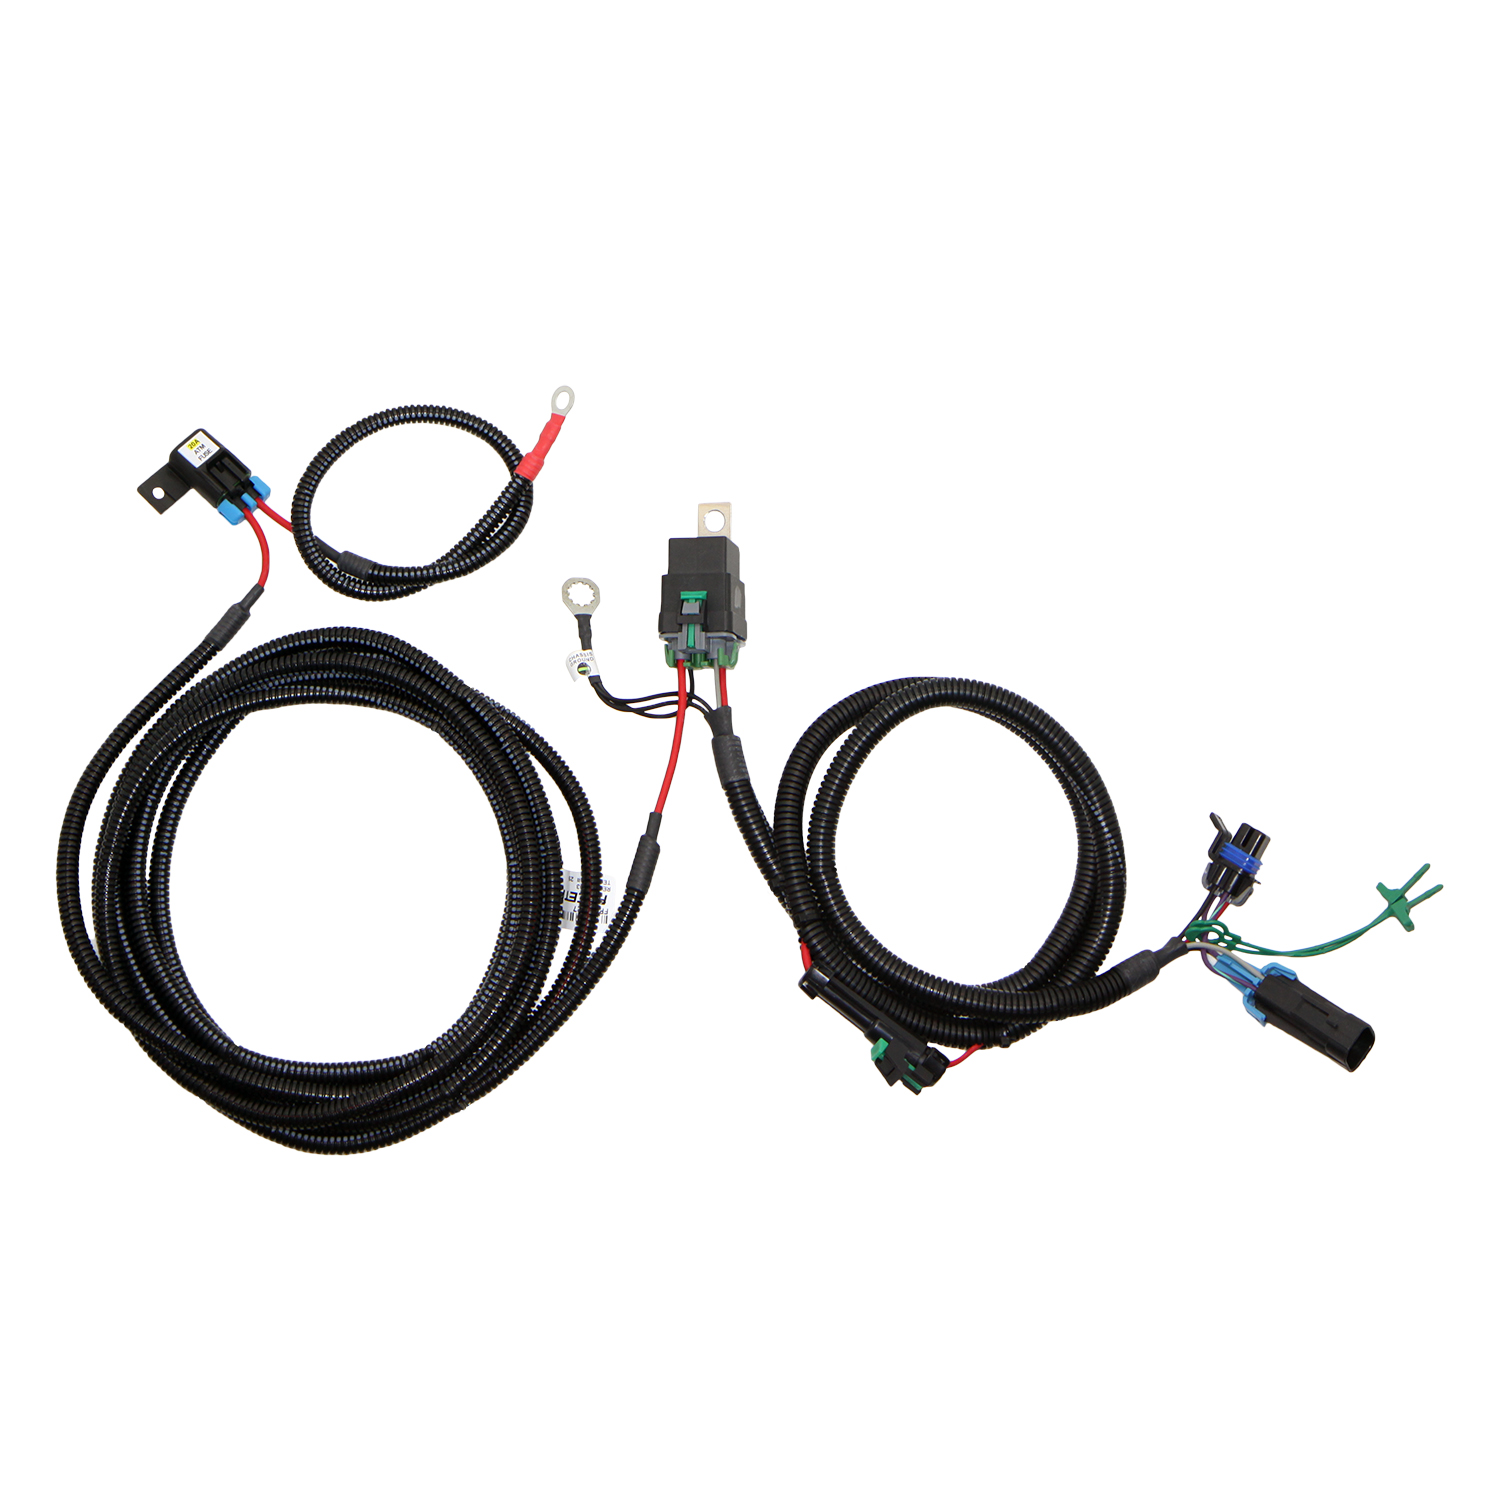 cadillac cts v fuel pump wiring harness fpwh 027 fuel pump direct tech wiring diagrams 2008 cadillac cts [ 1500 x 1500 Pixel ]